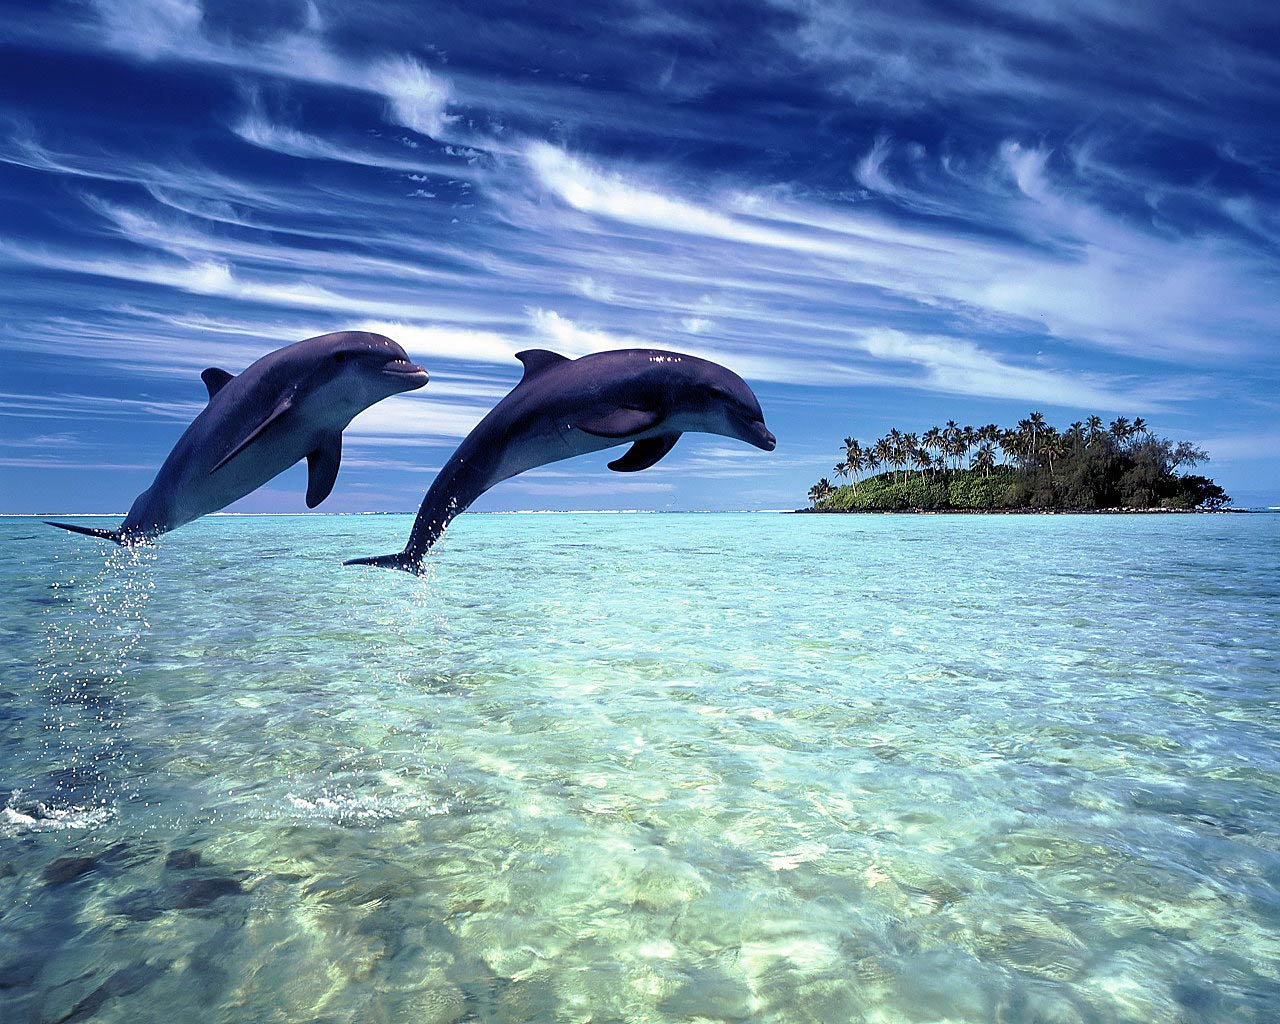 free Dolphin wallpaper wallpapers download 1280x1024